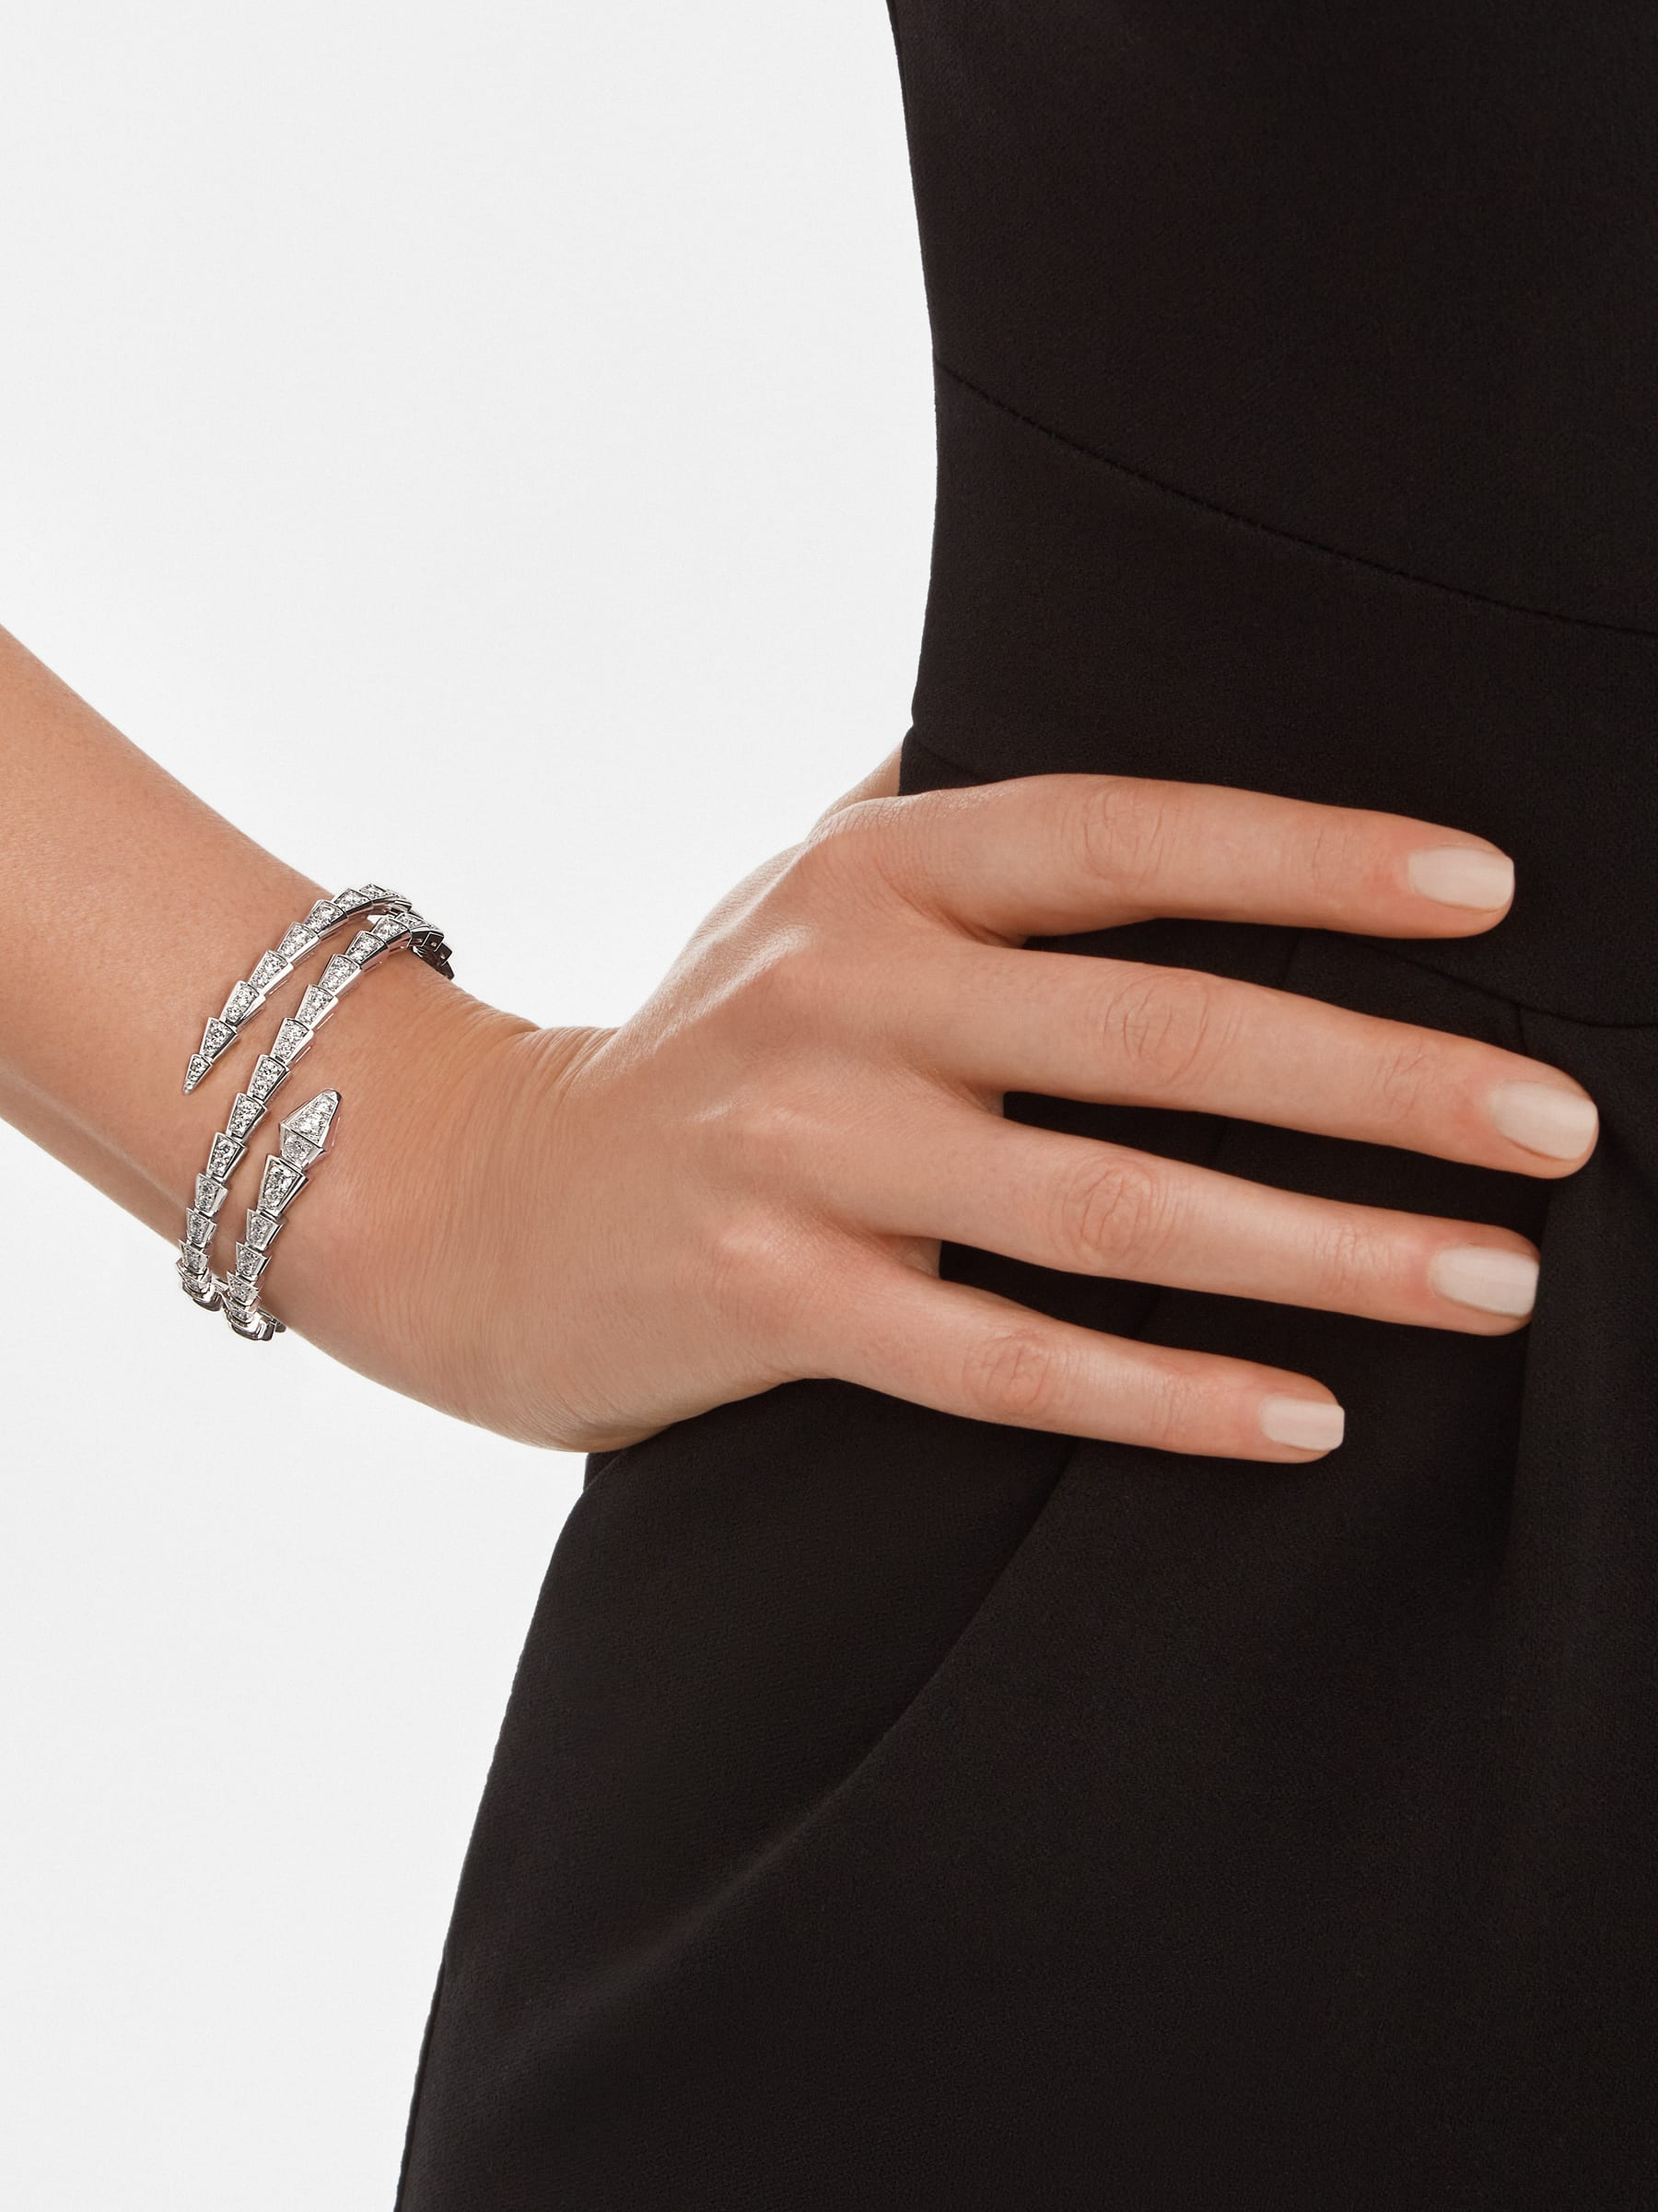 Serpenti Viper two-coil 18 kt white gold bracelet set with pavé diamonds BR858795 image 3